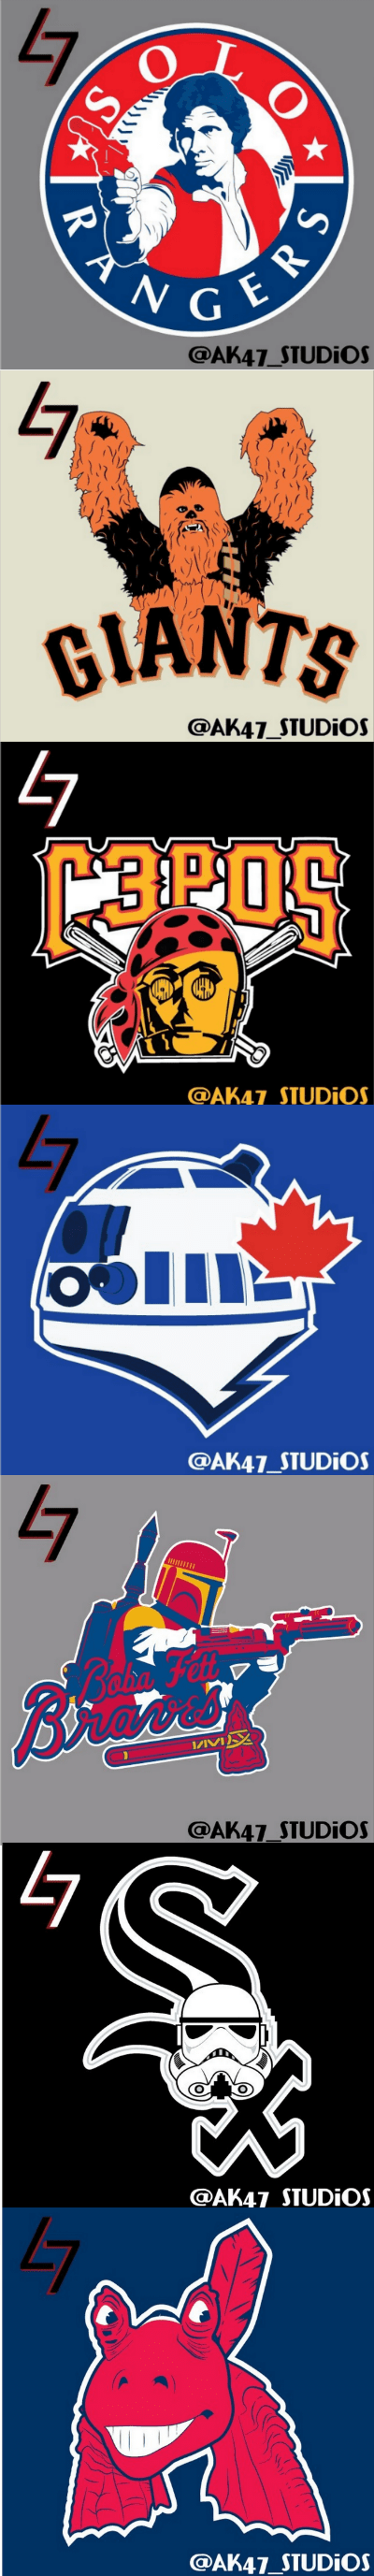 scifi,sportsball,star wars,Fan Art,MLB